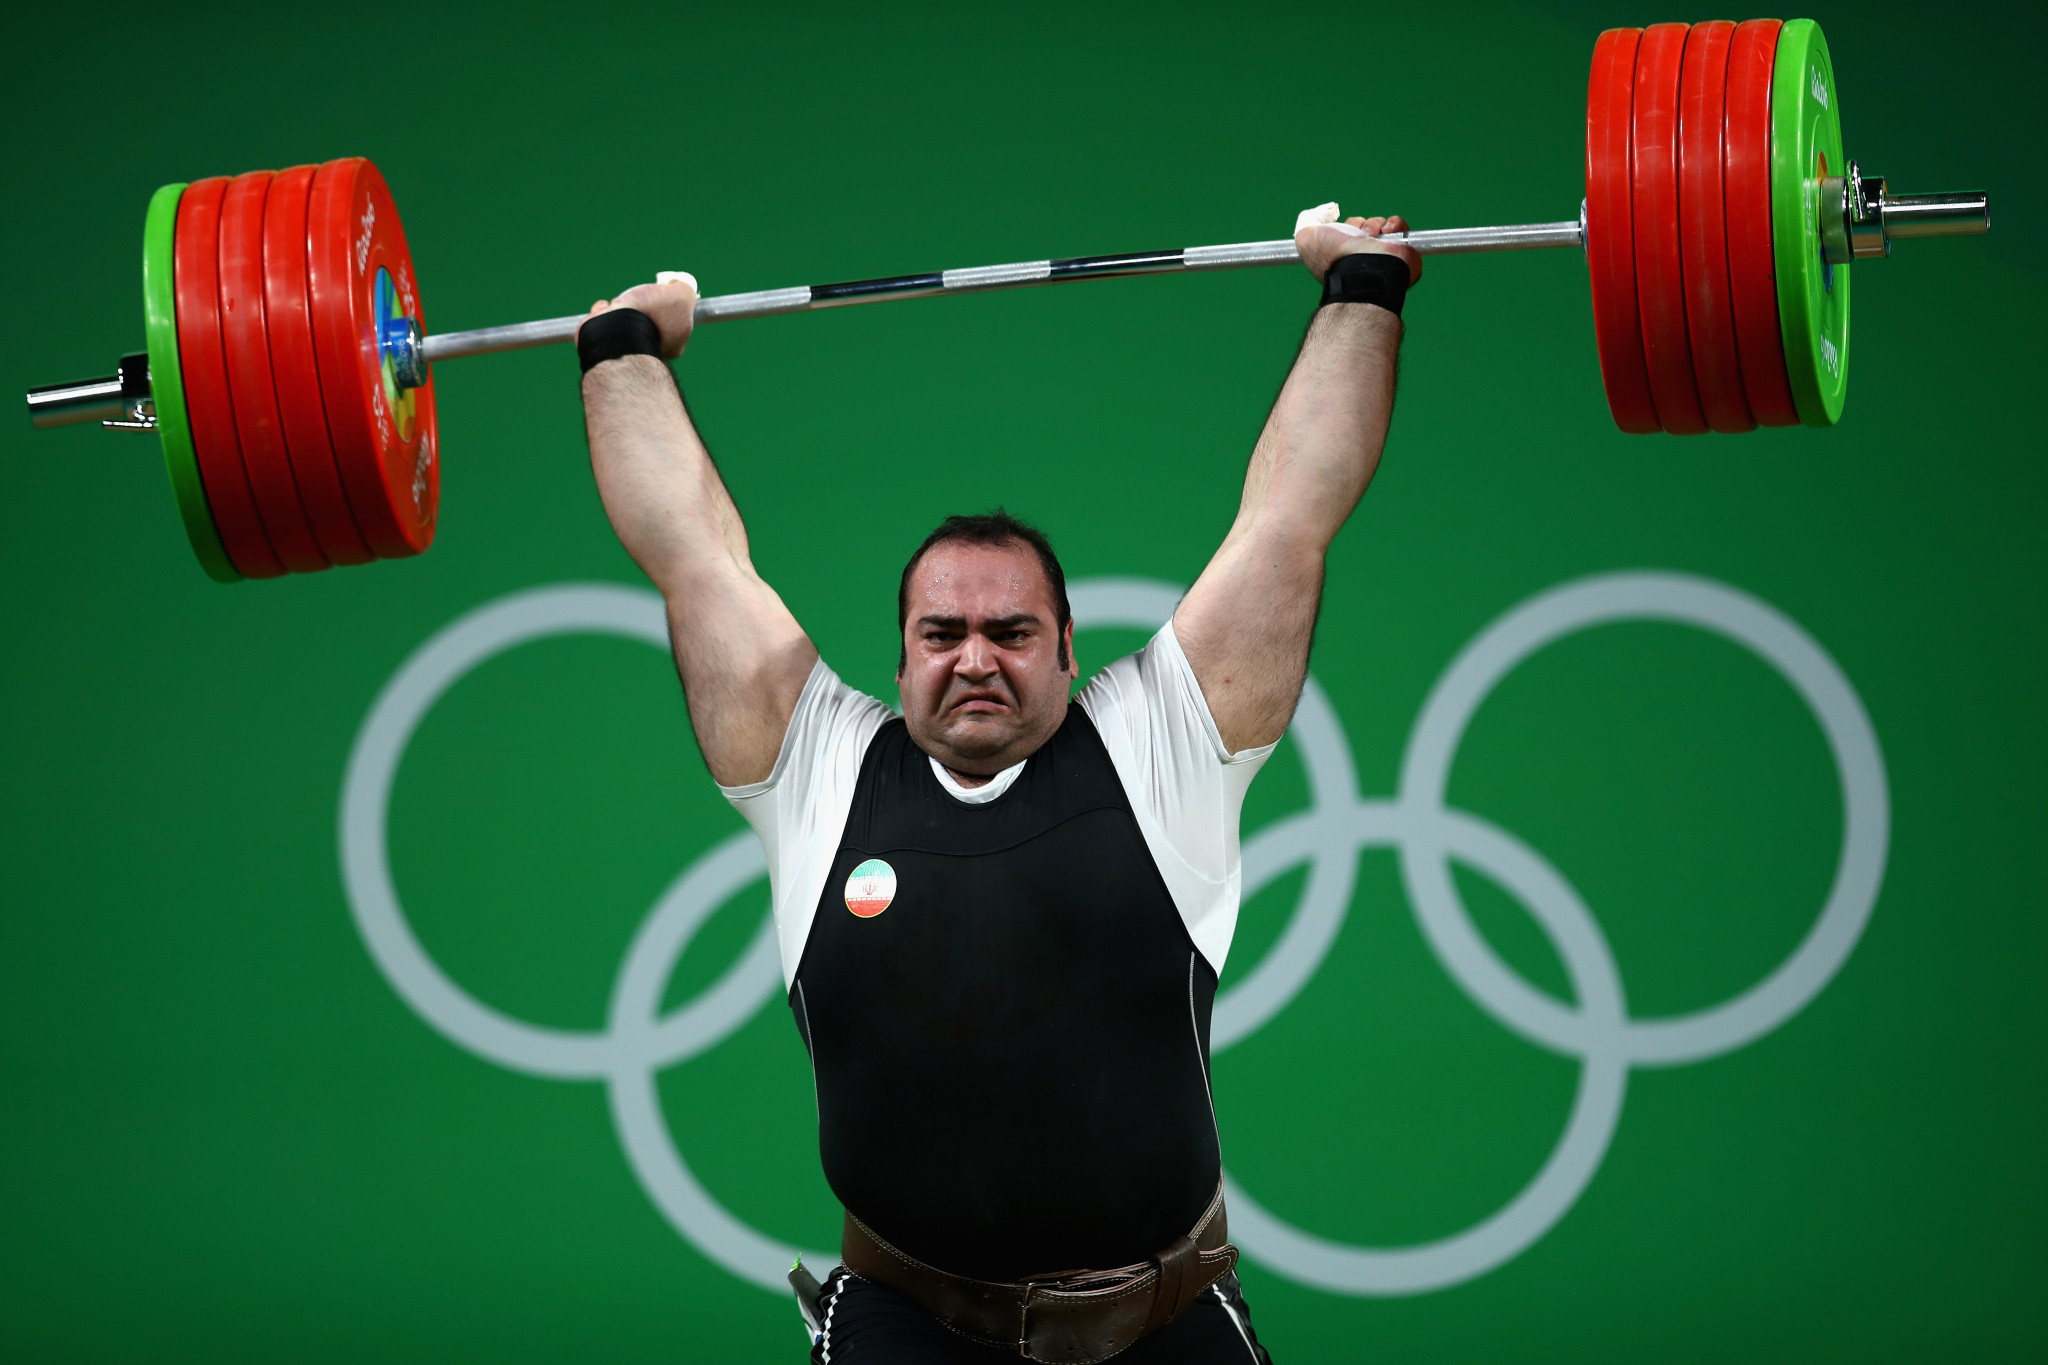 London 2012 Olympic gold medallist Behdad Salimi is one of Iran's star weightlifters ©Getty Images